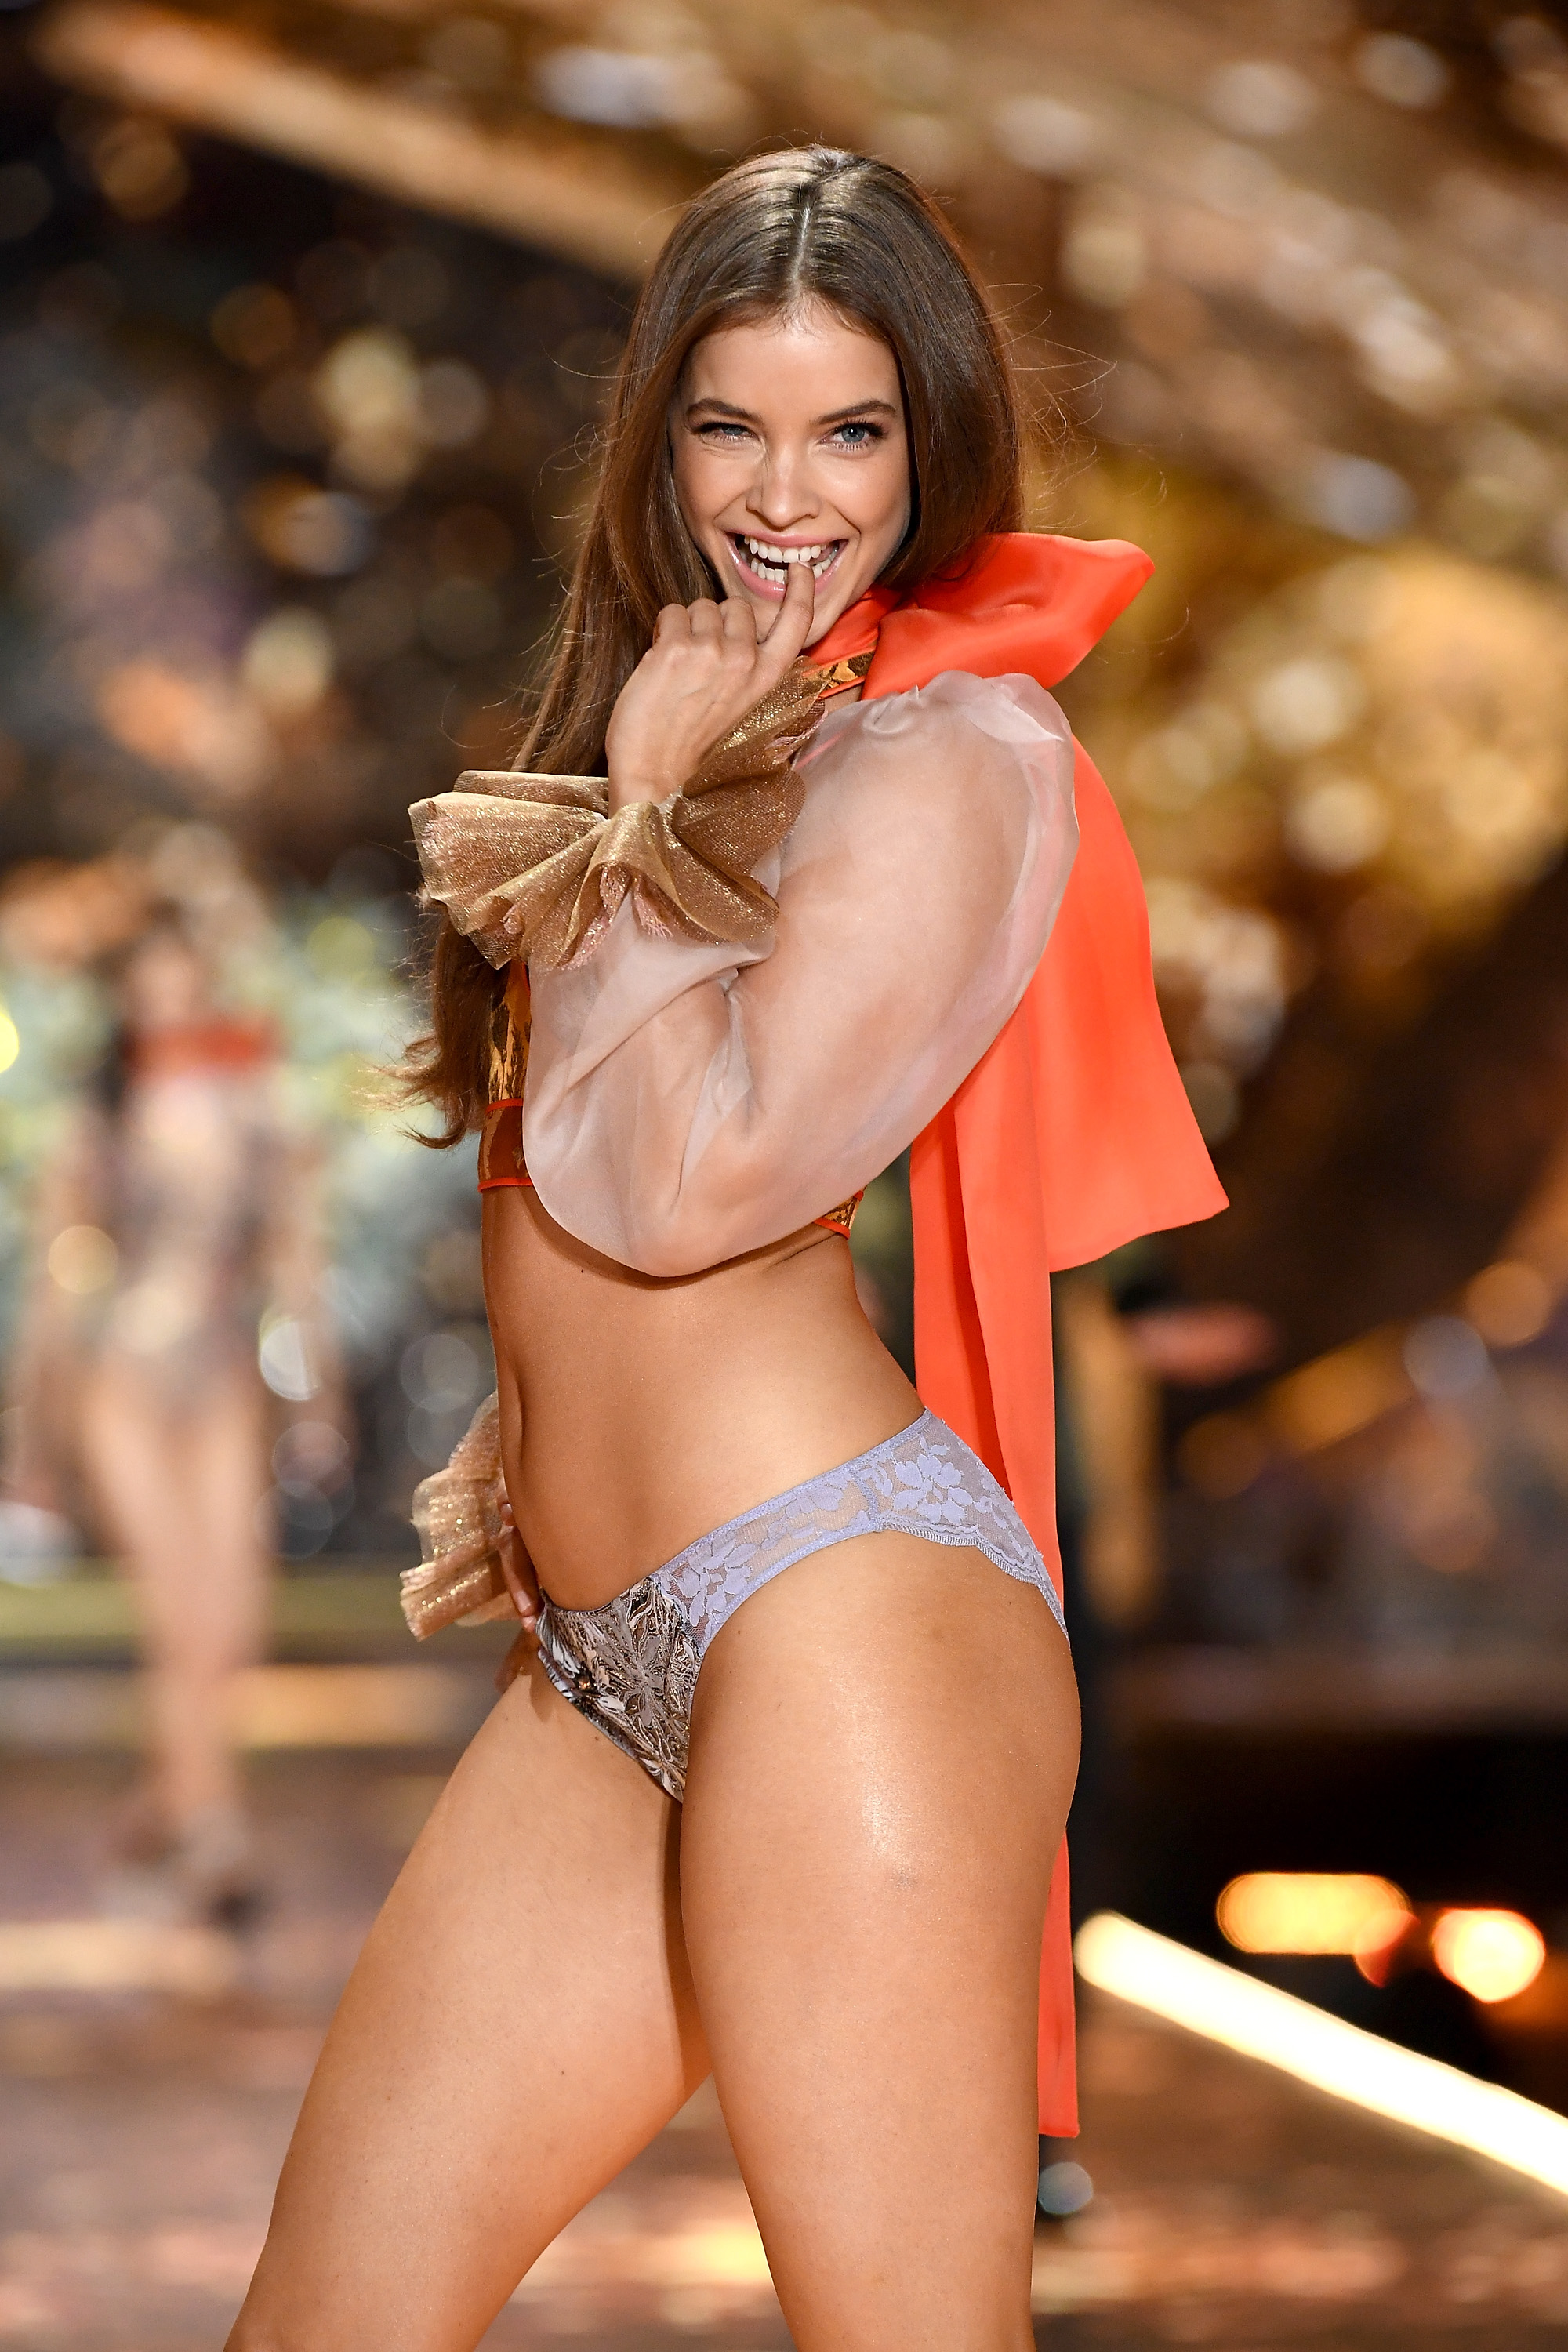 Barbara Palvin walks the runway during the 2018 Victoria's Secret Fashion Show at Pier 94 on November 8, 2018, in New York City. (Getty Images)